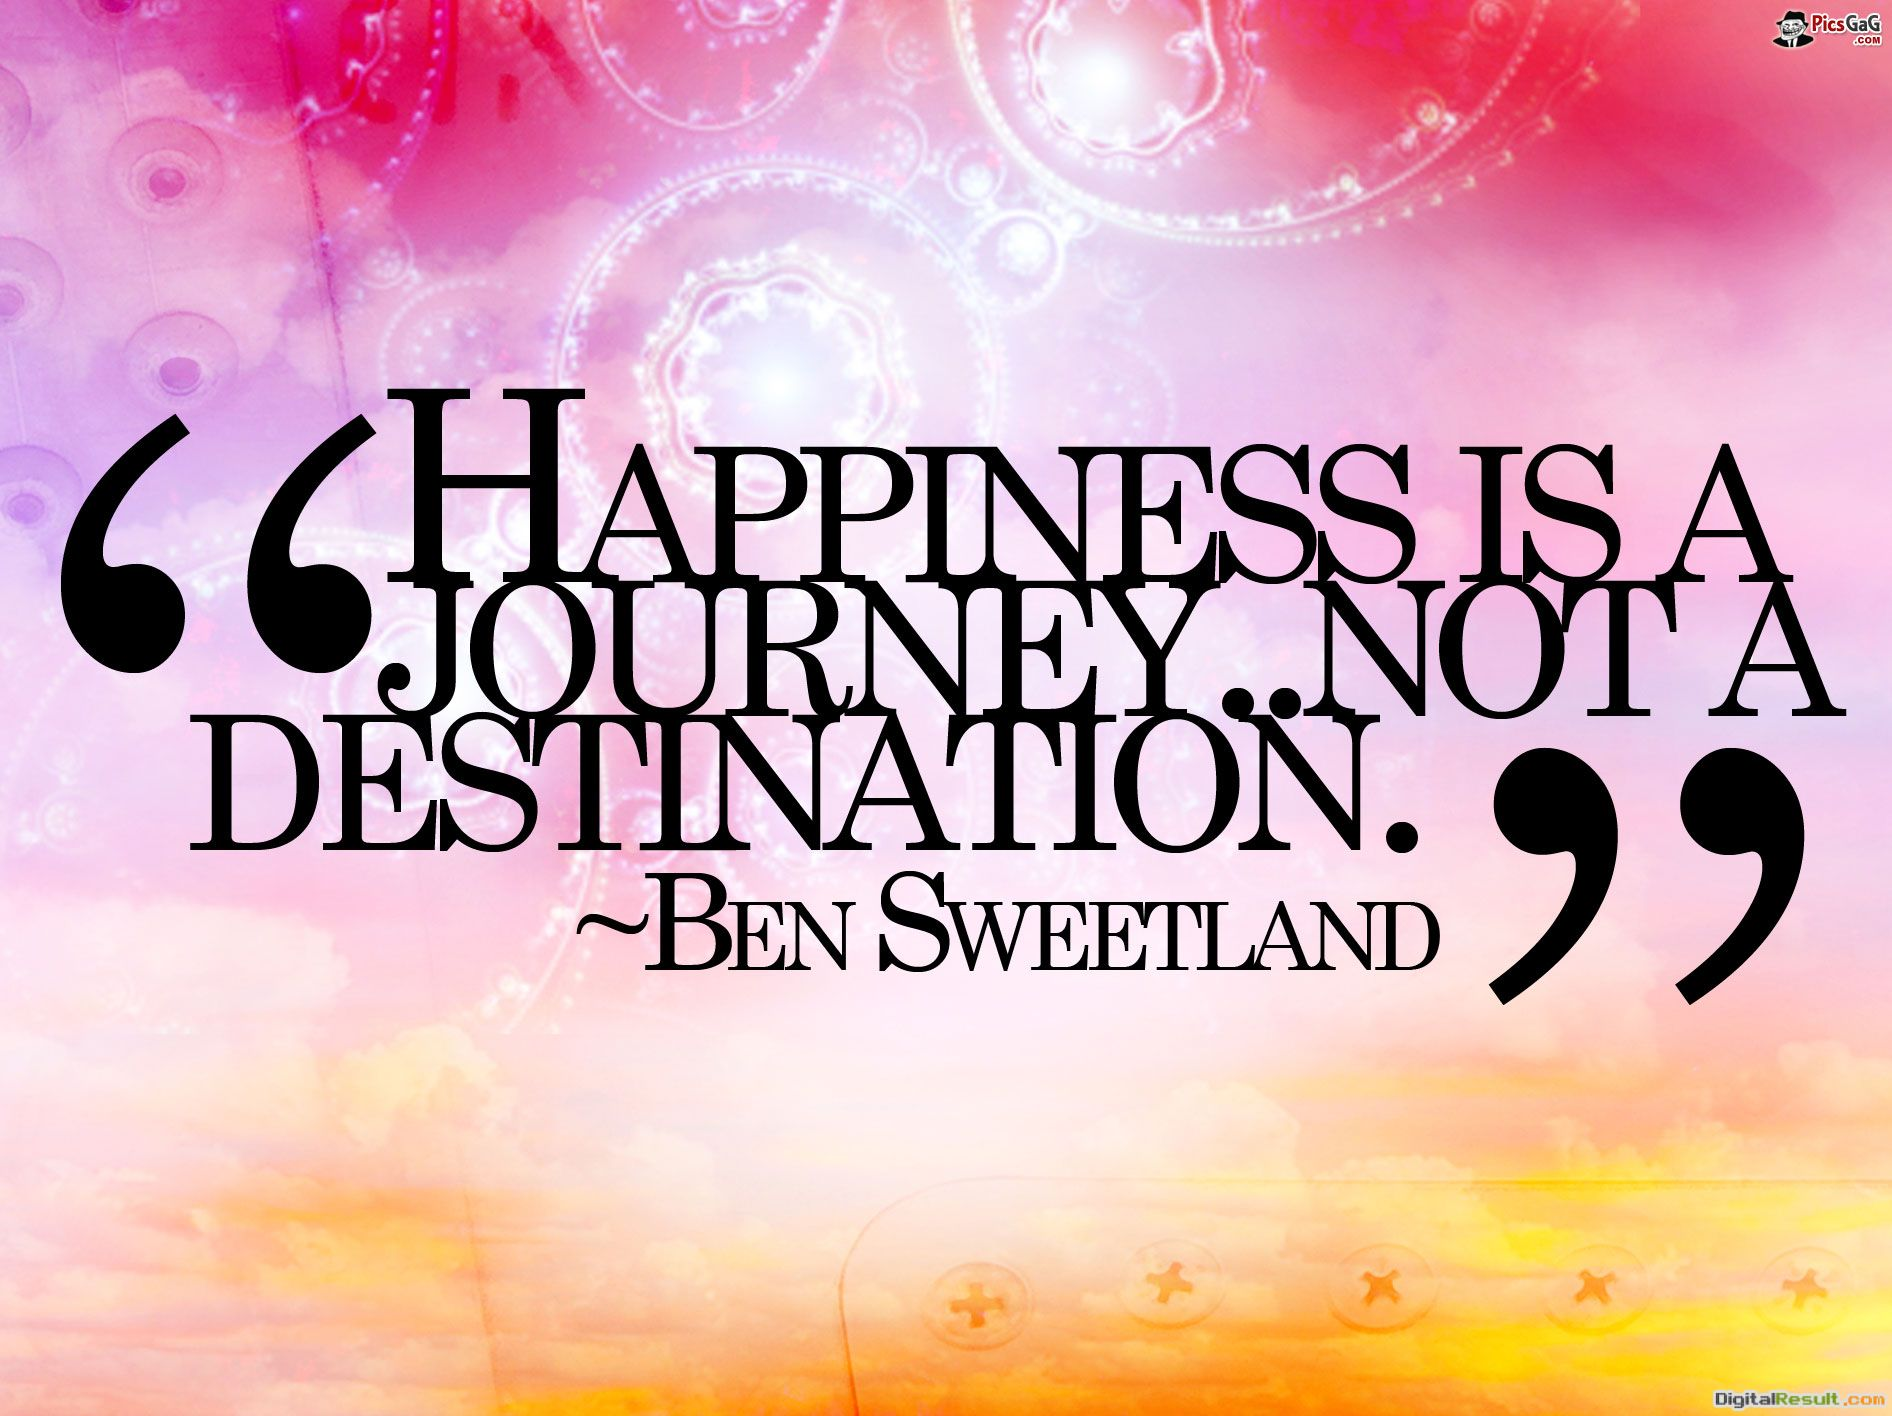 Happiness Is A Journey Quote HD Wallpaper #6051 Wallpaper computer 1046